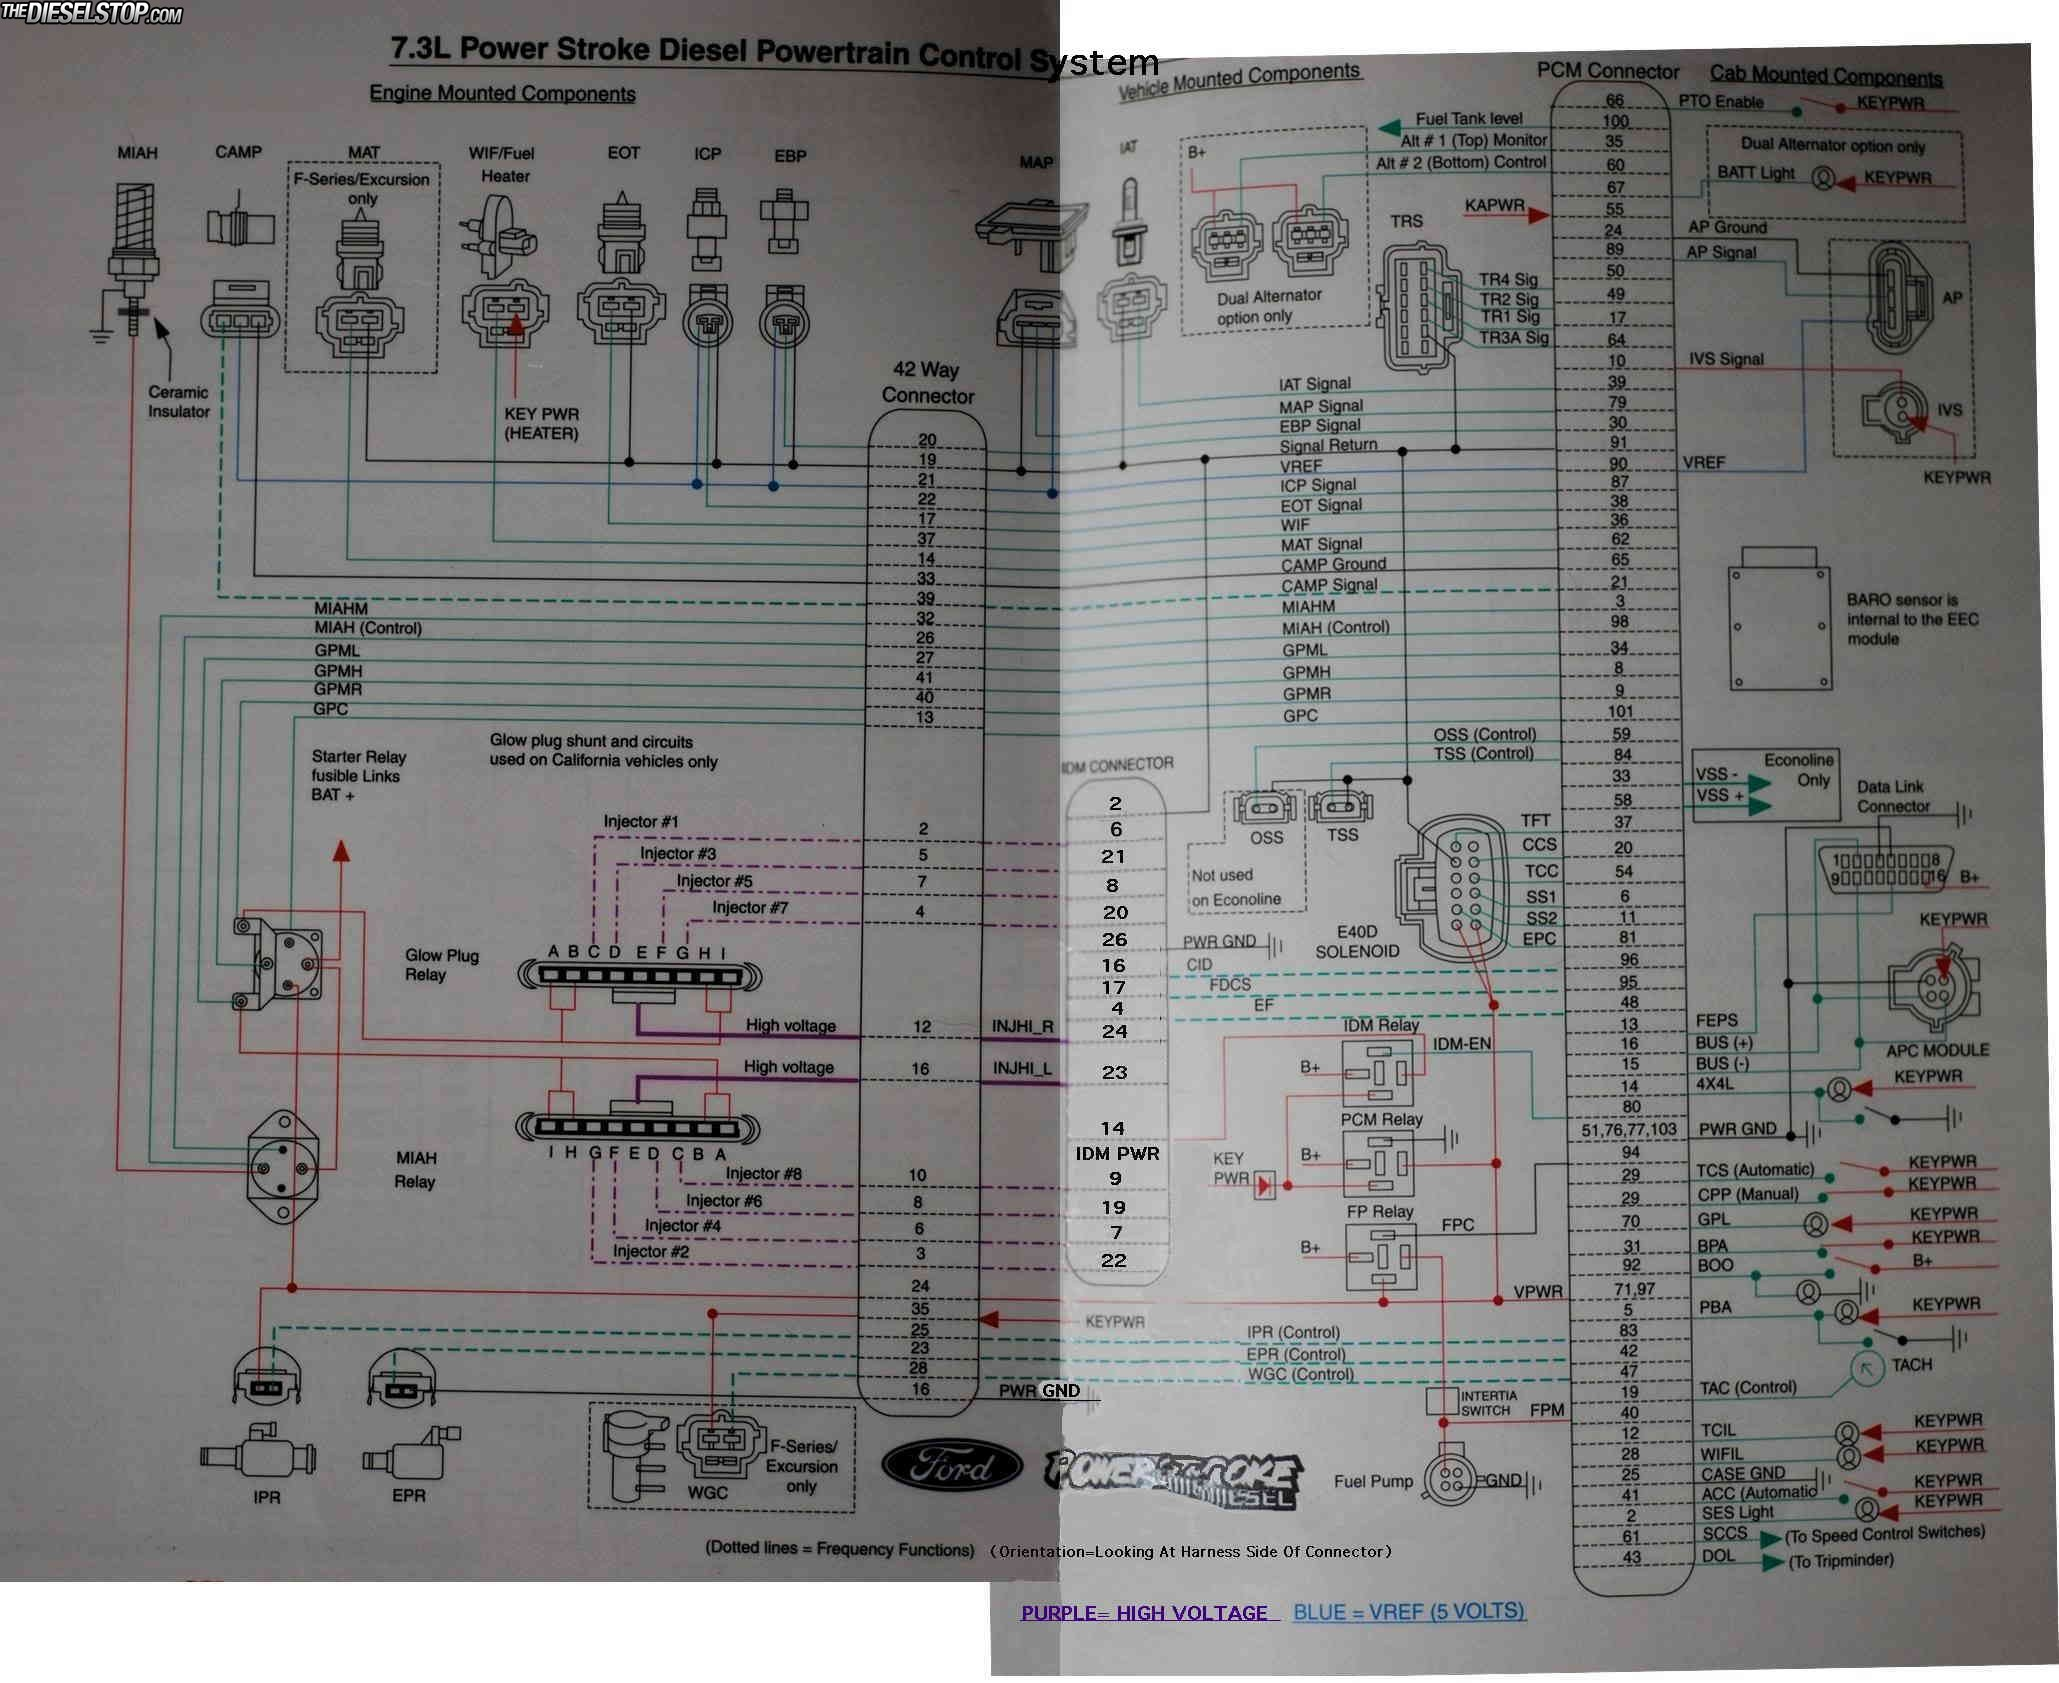 1996 ford F250 Tail Light Wiring Diagram 7 3l Wiring Schematic Printable Very Handy Diesel forum Of 1996 ford F250 Tail Light Wiring Diagram 1996 ford F250 Trailer Wiring Harness Wiring Diagram Week